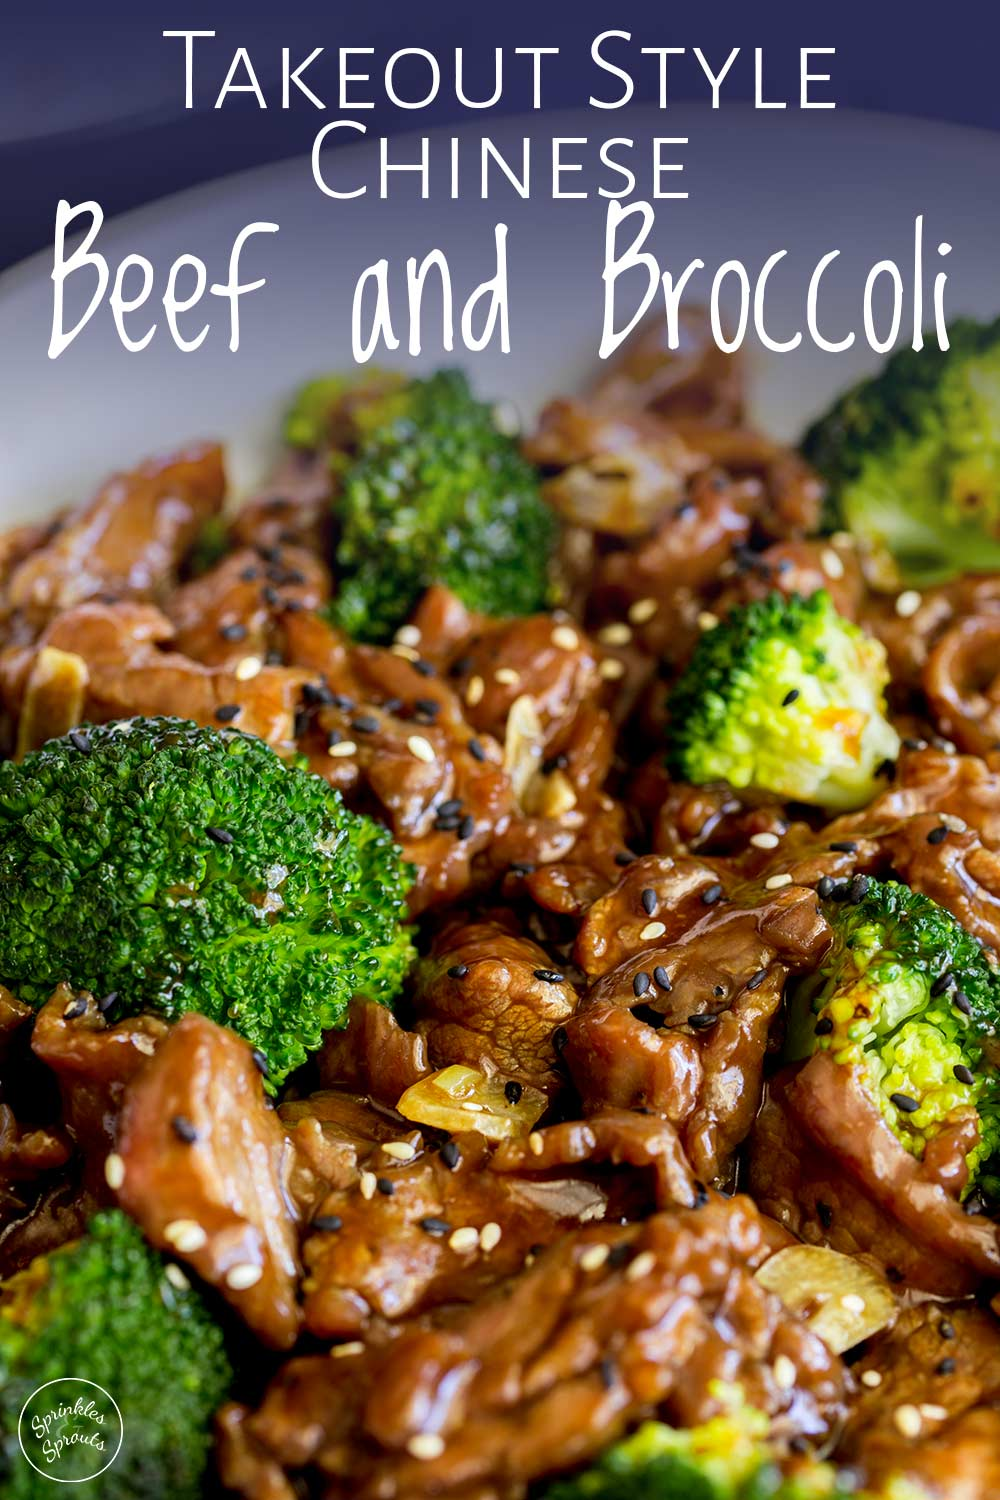 Takeout Style Chinese Beef and Broccoli | Sprinkles and Sprouts